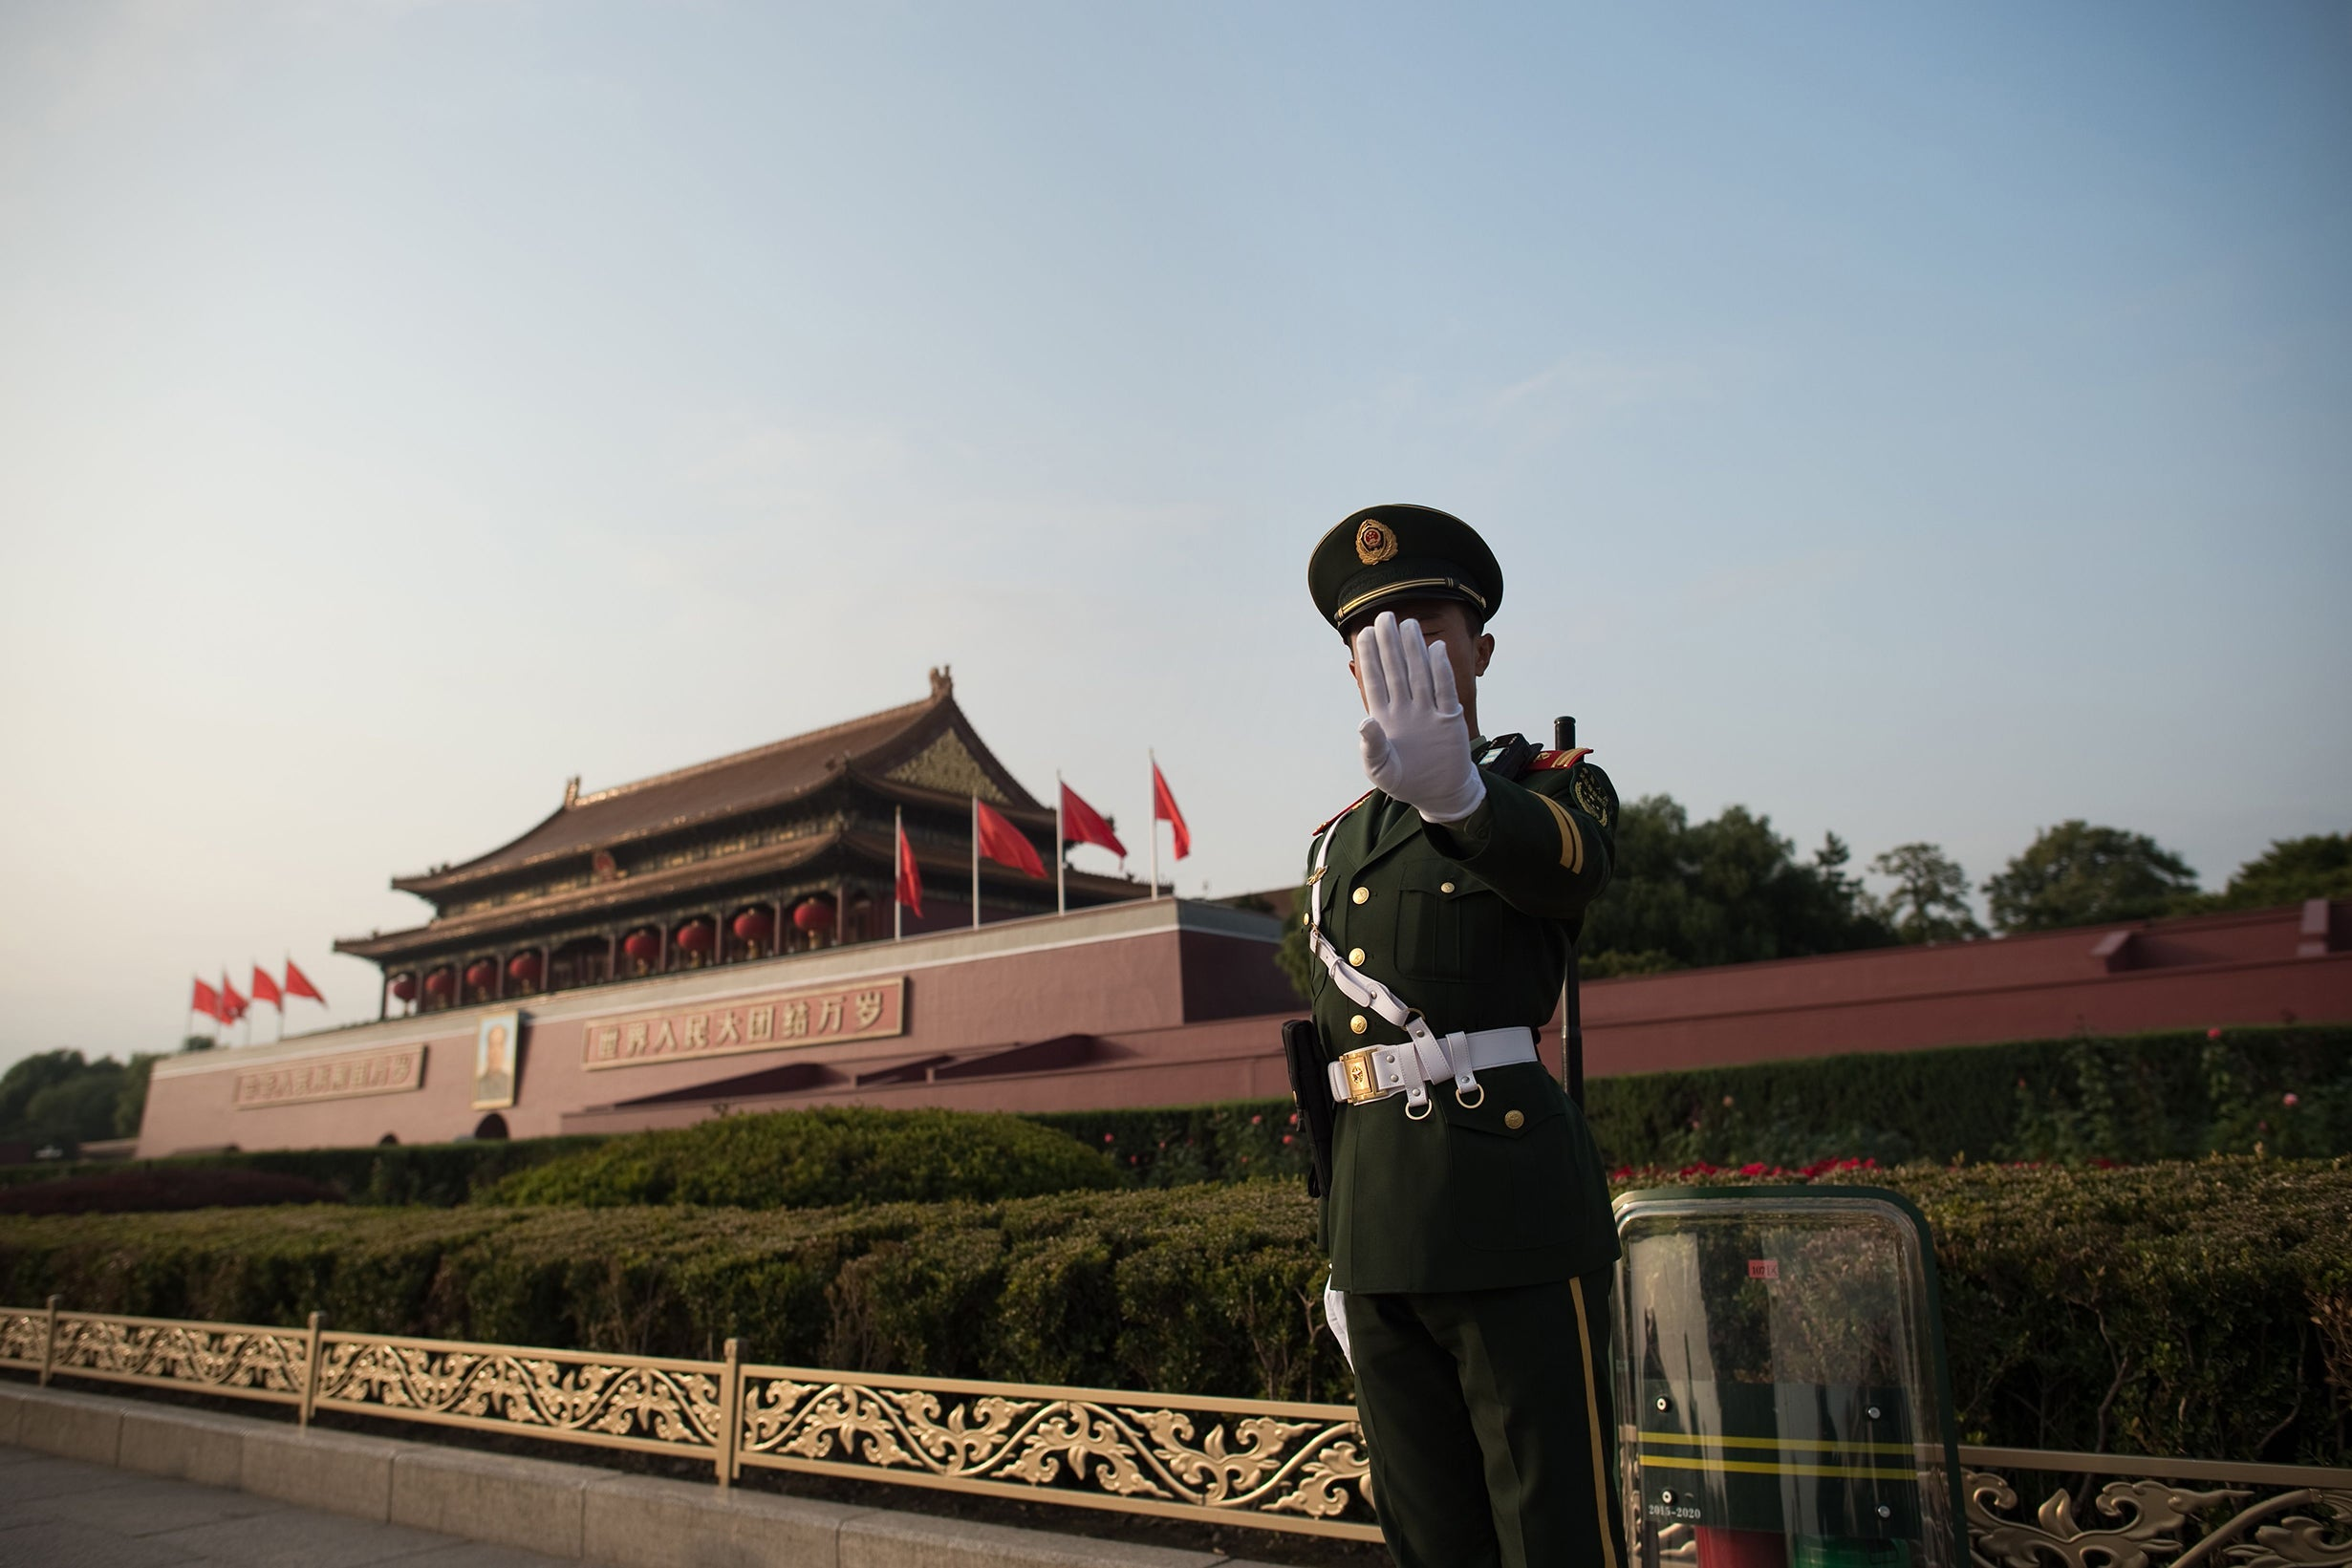 As China stumbles, the West must ask: what if its rise is not inevitable?